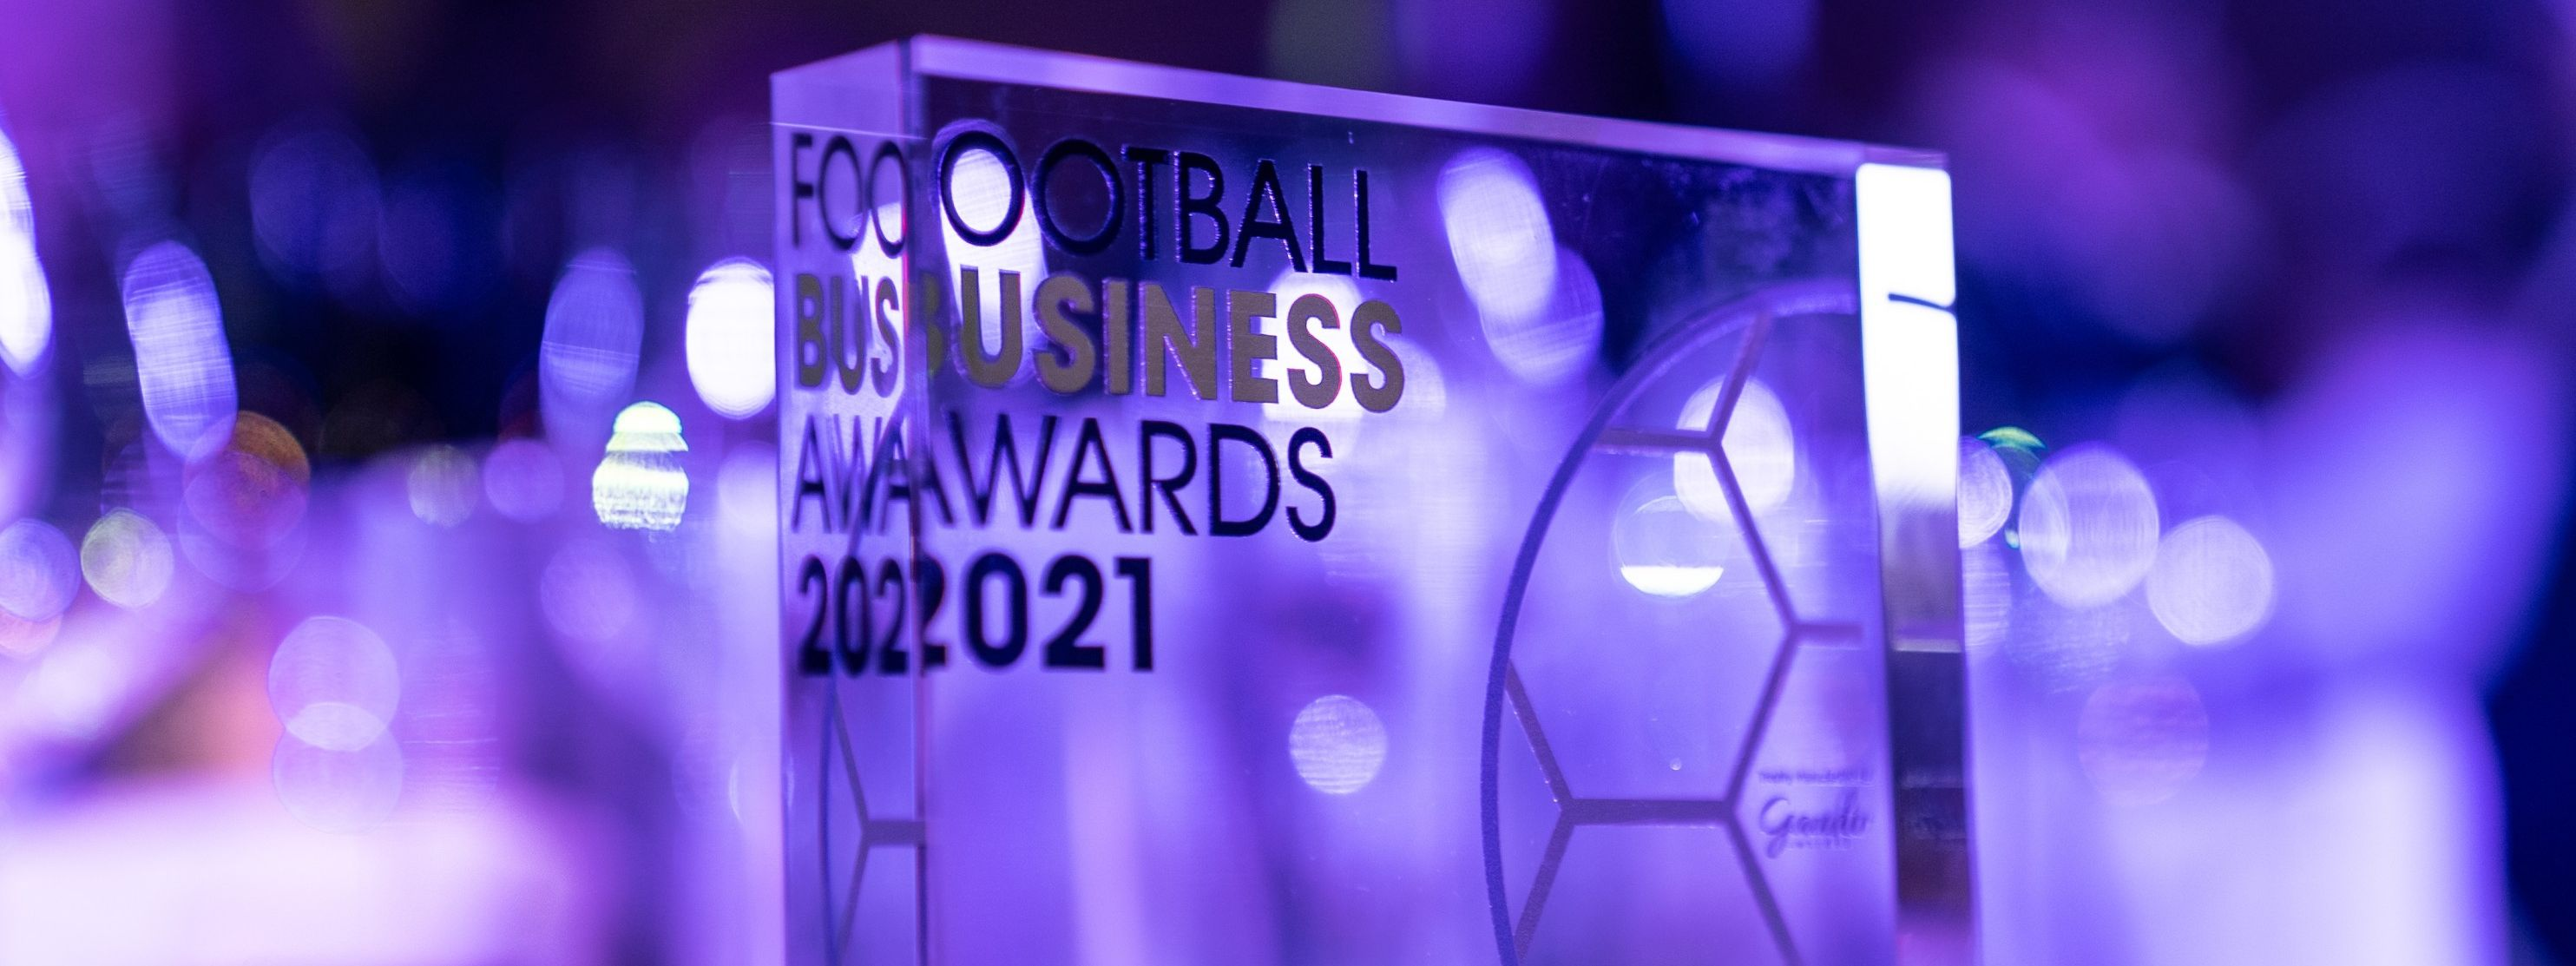 norwich-city-win-silver-with-war-paint-for-men-partnership-at-football-business-awards